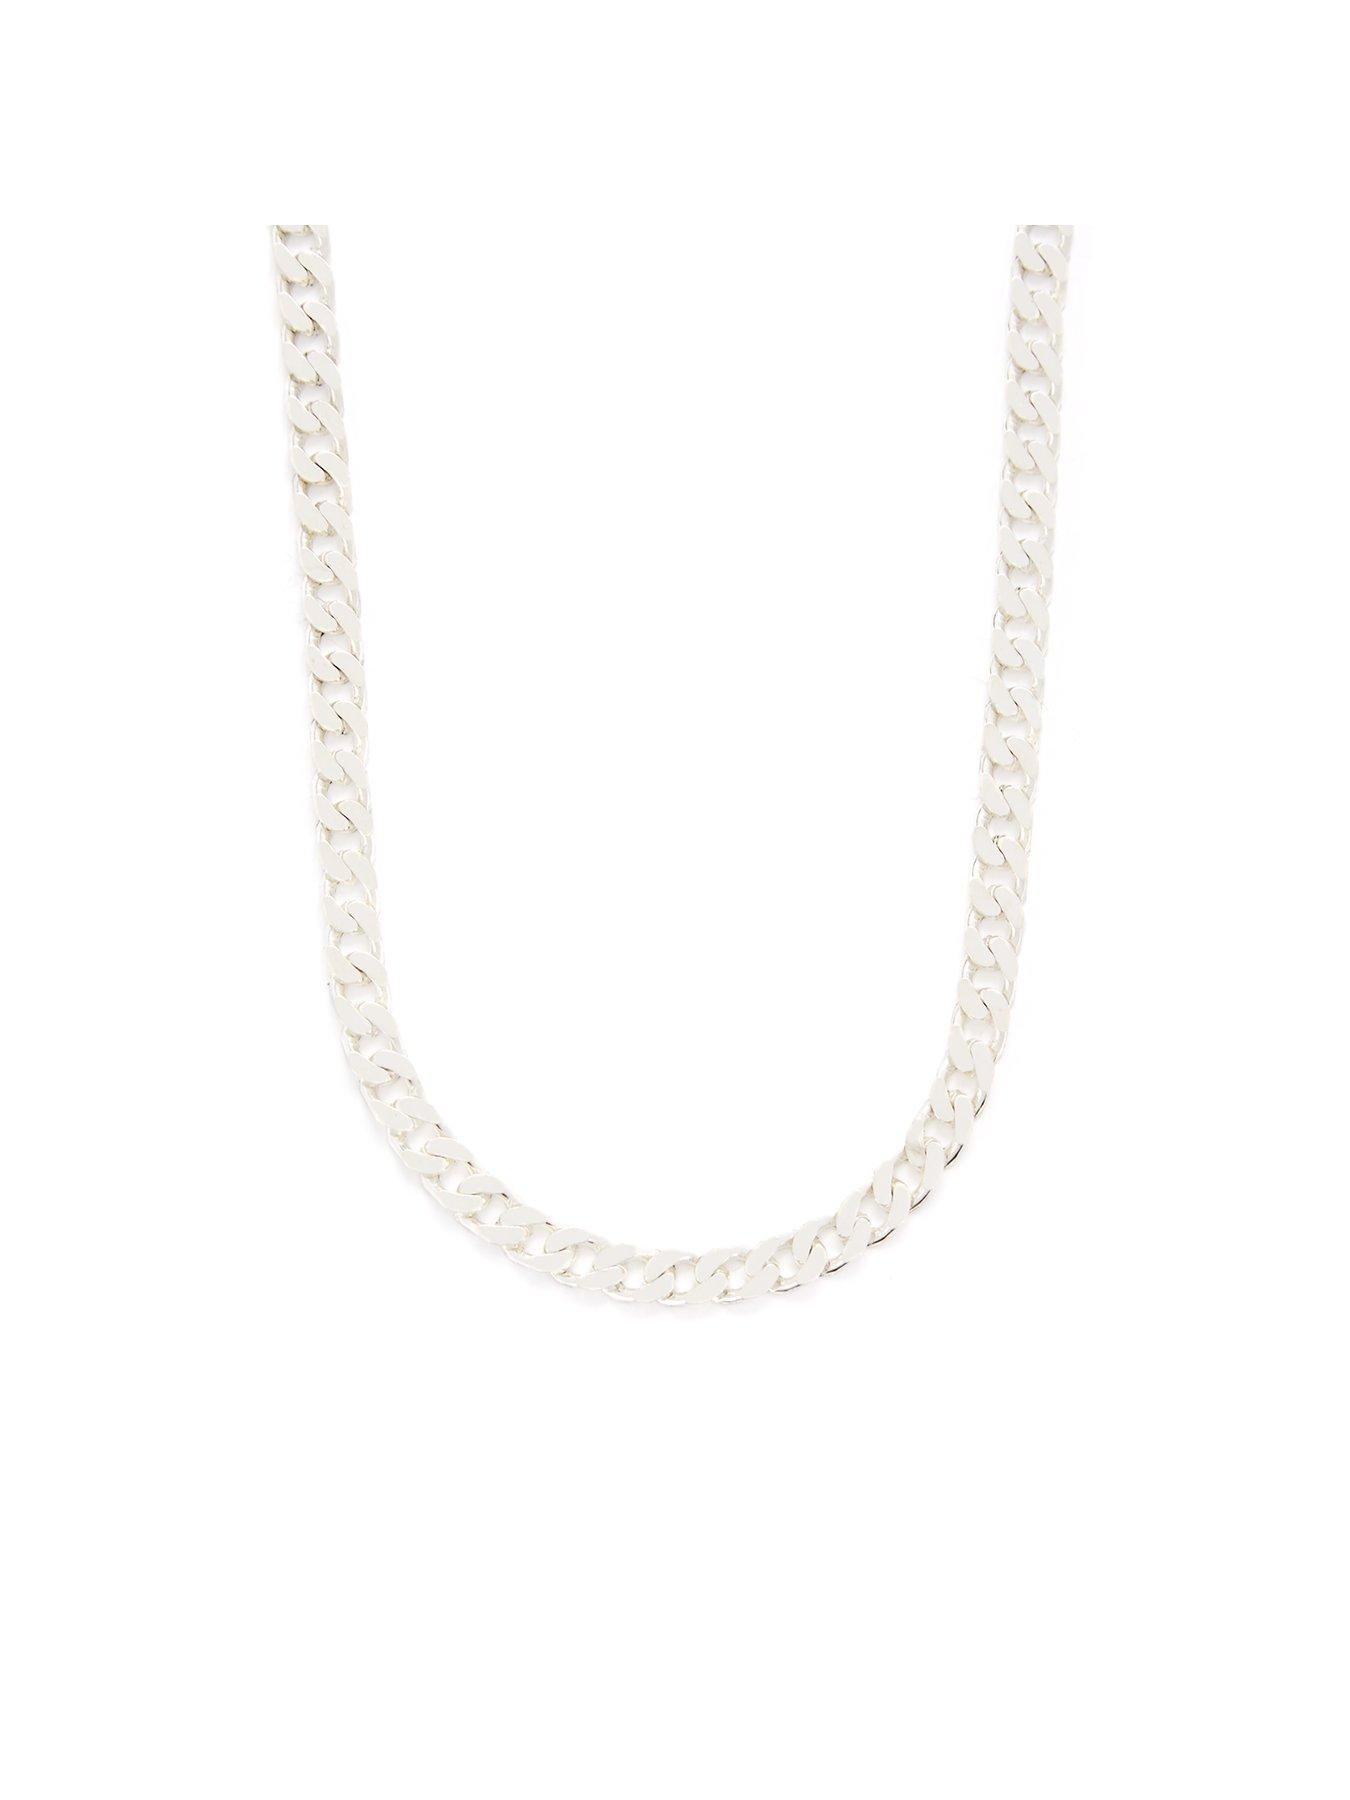 "Silver Plated Chain Necklaces 18/"" sold per pack of 12 pieces"